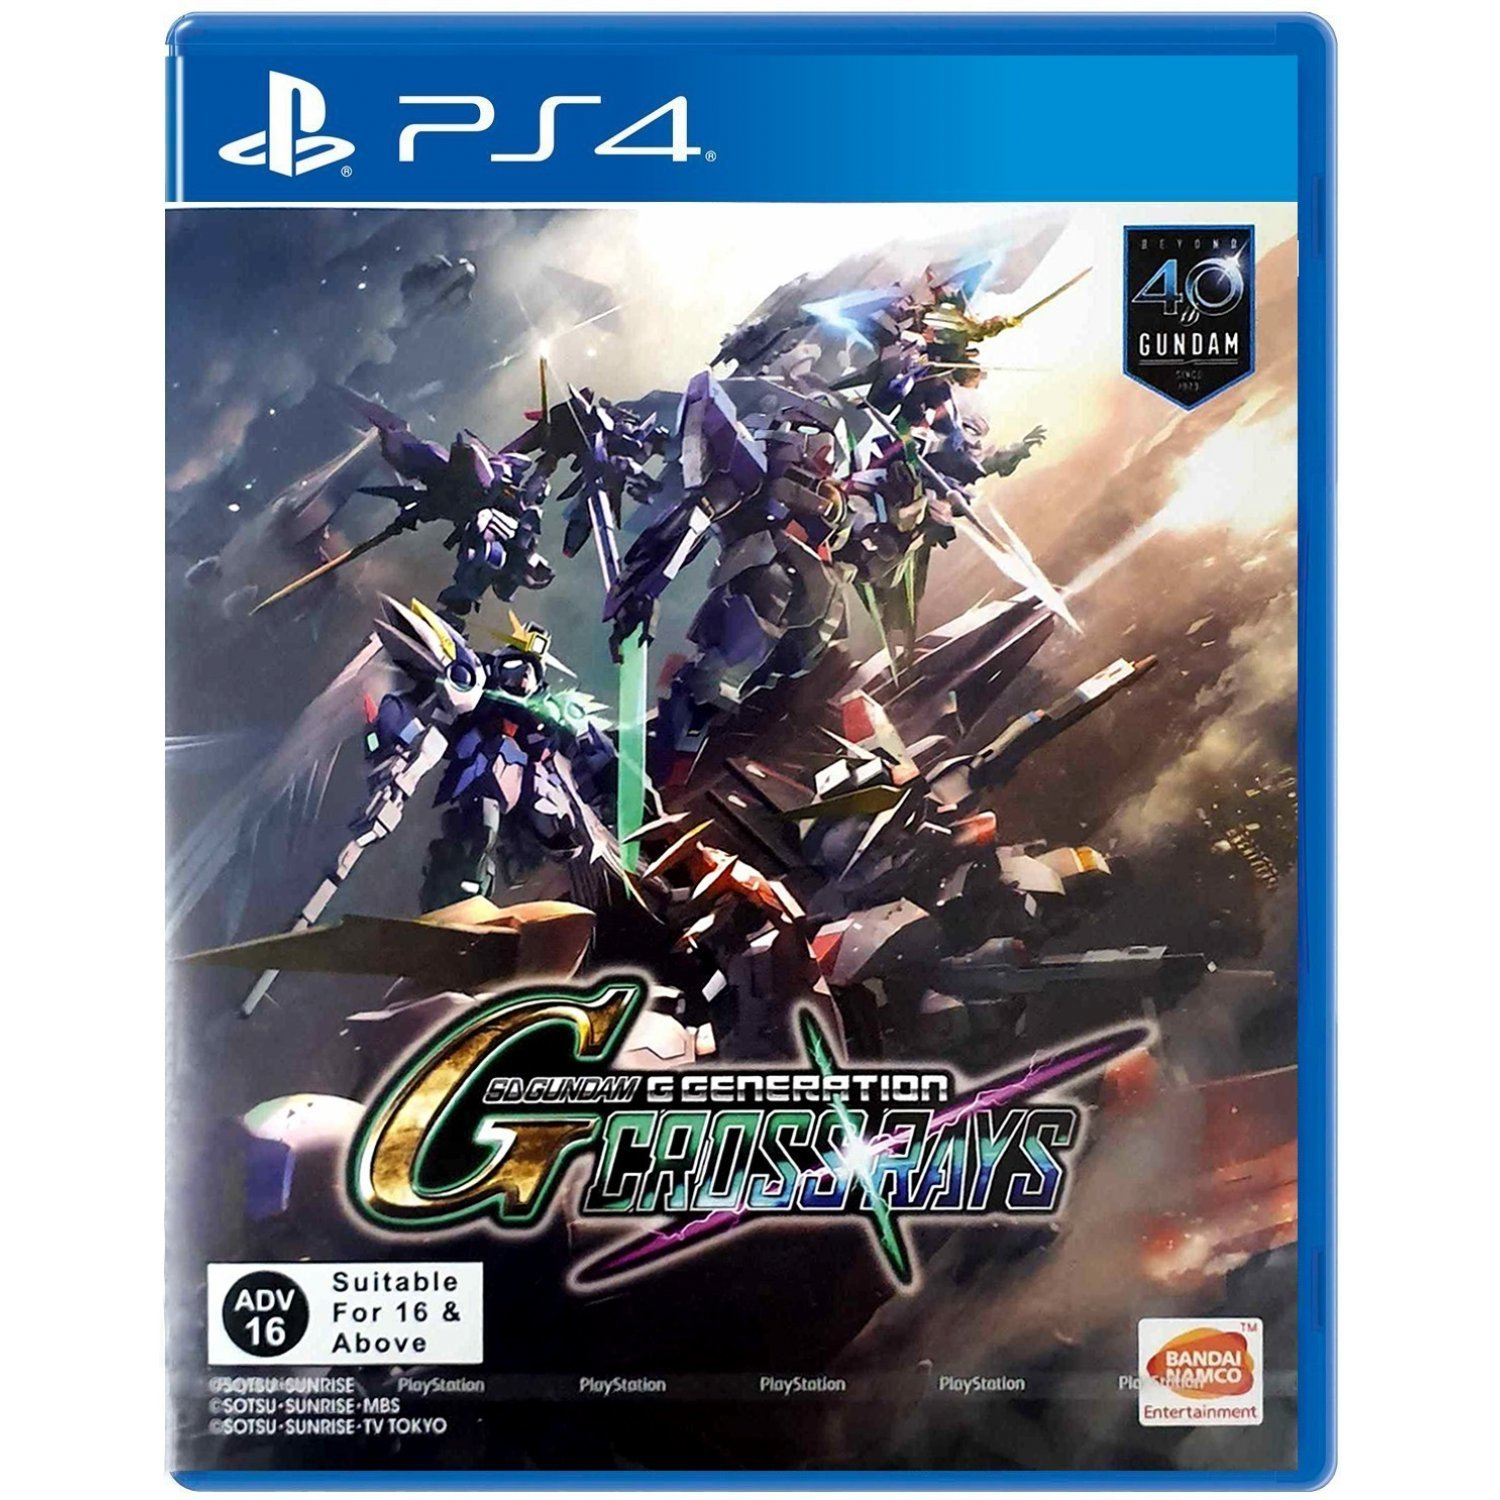 sd-gundam-g-generation-cross-rays-english-cover-multilanguage-584291.11.jpg